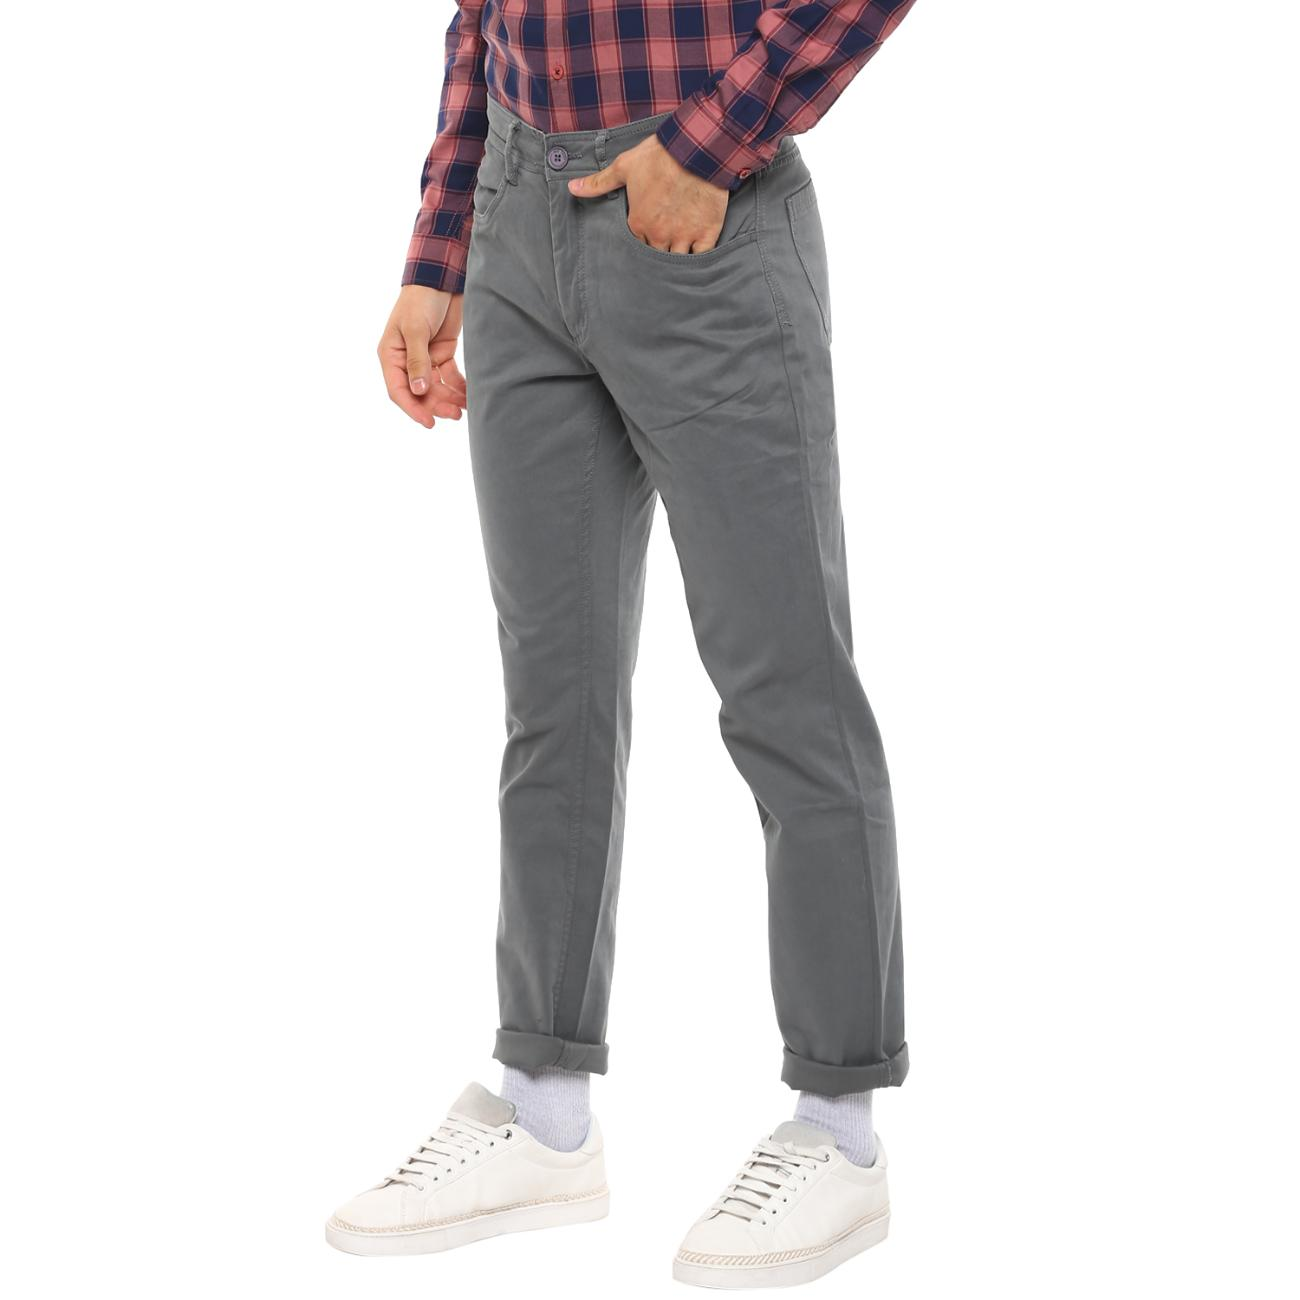 Buy Gray Casual Trousers for Men